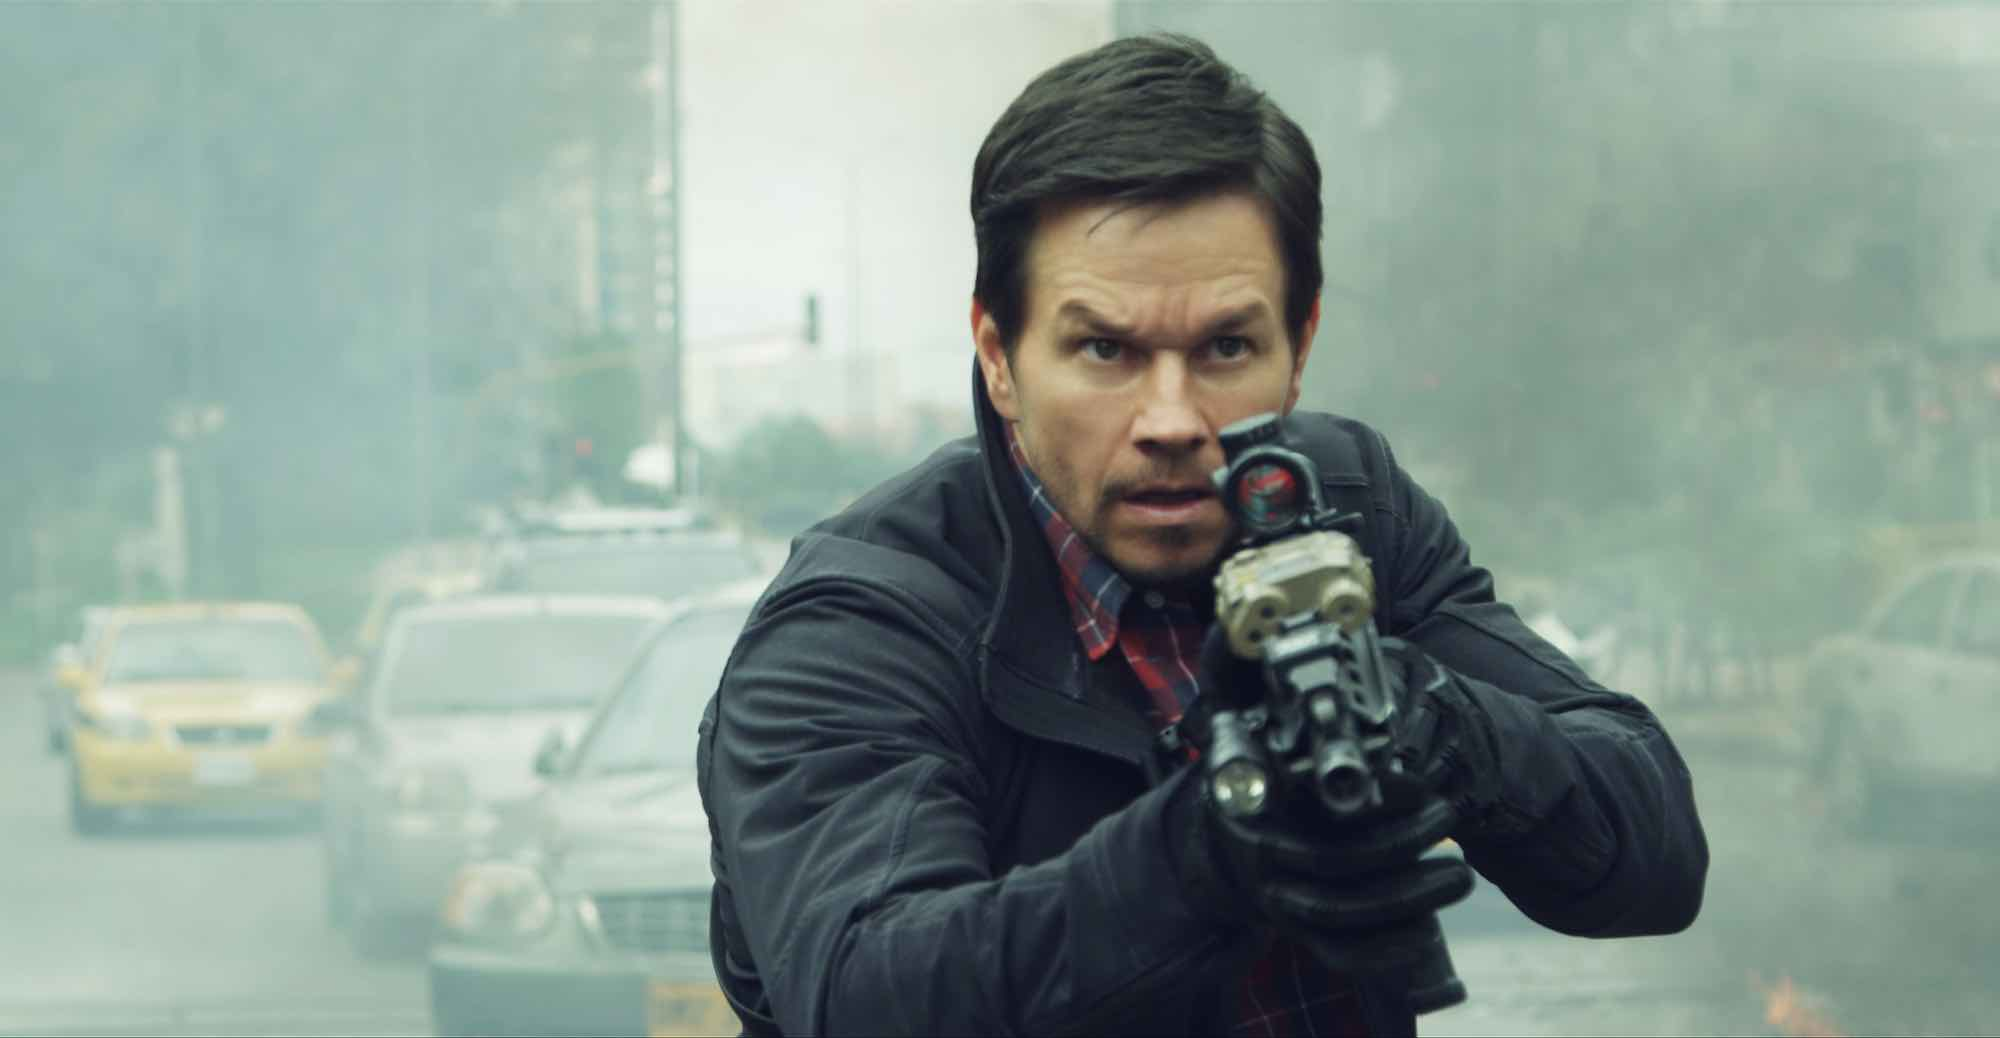 Check Out New MILE 22 Trailer Featuring Mark Wahlberg